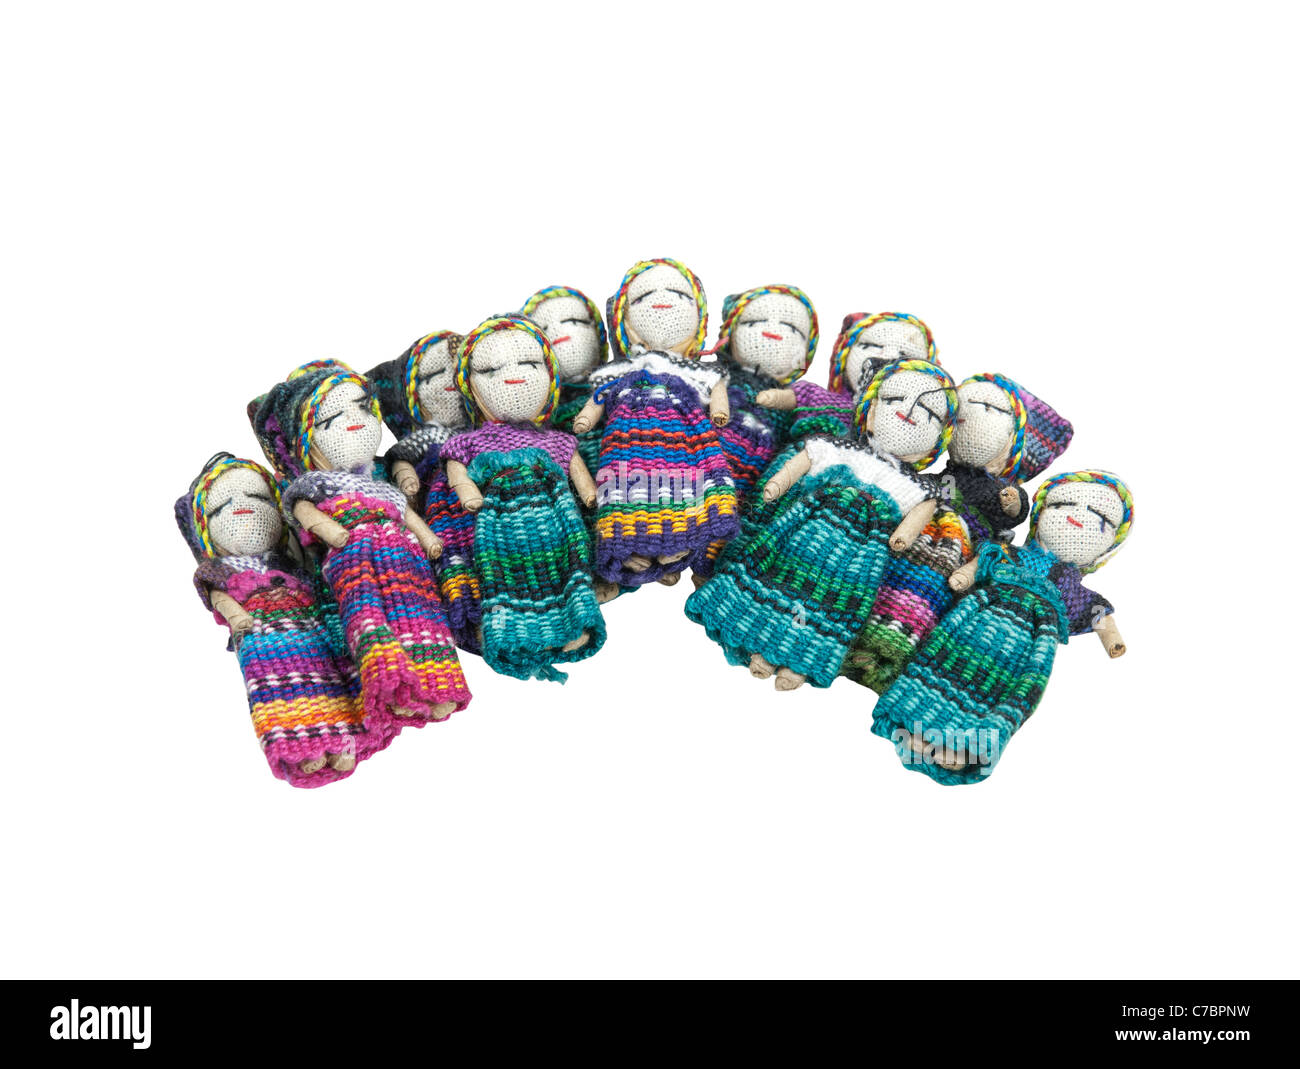 Worry dolls used to confess worries to at night for peaceful sleep - Stock Image